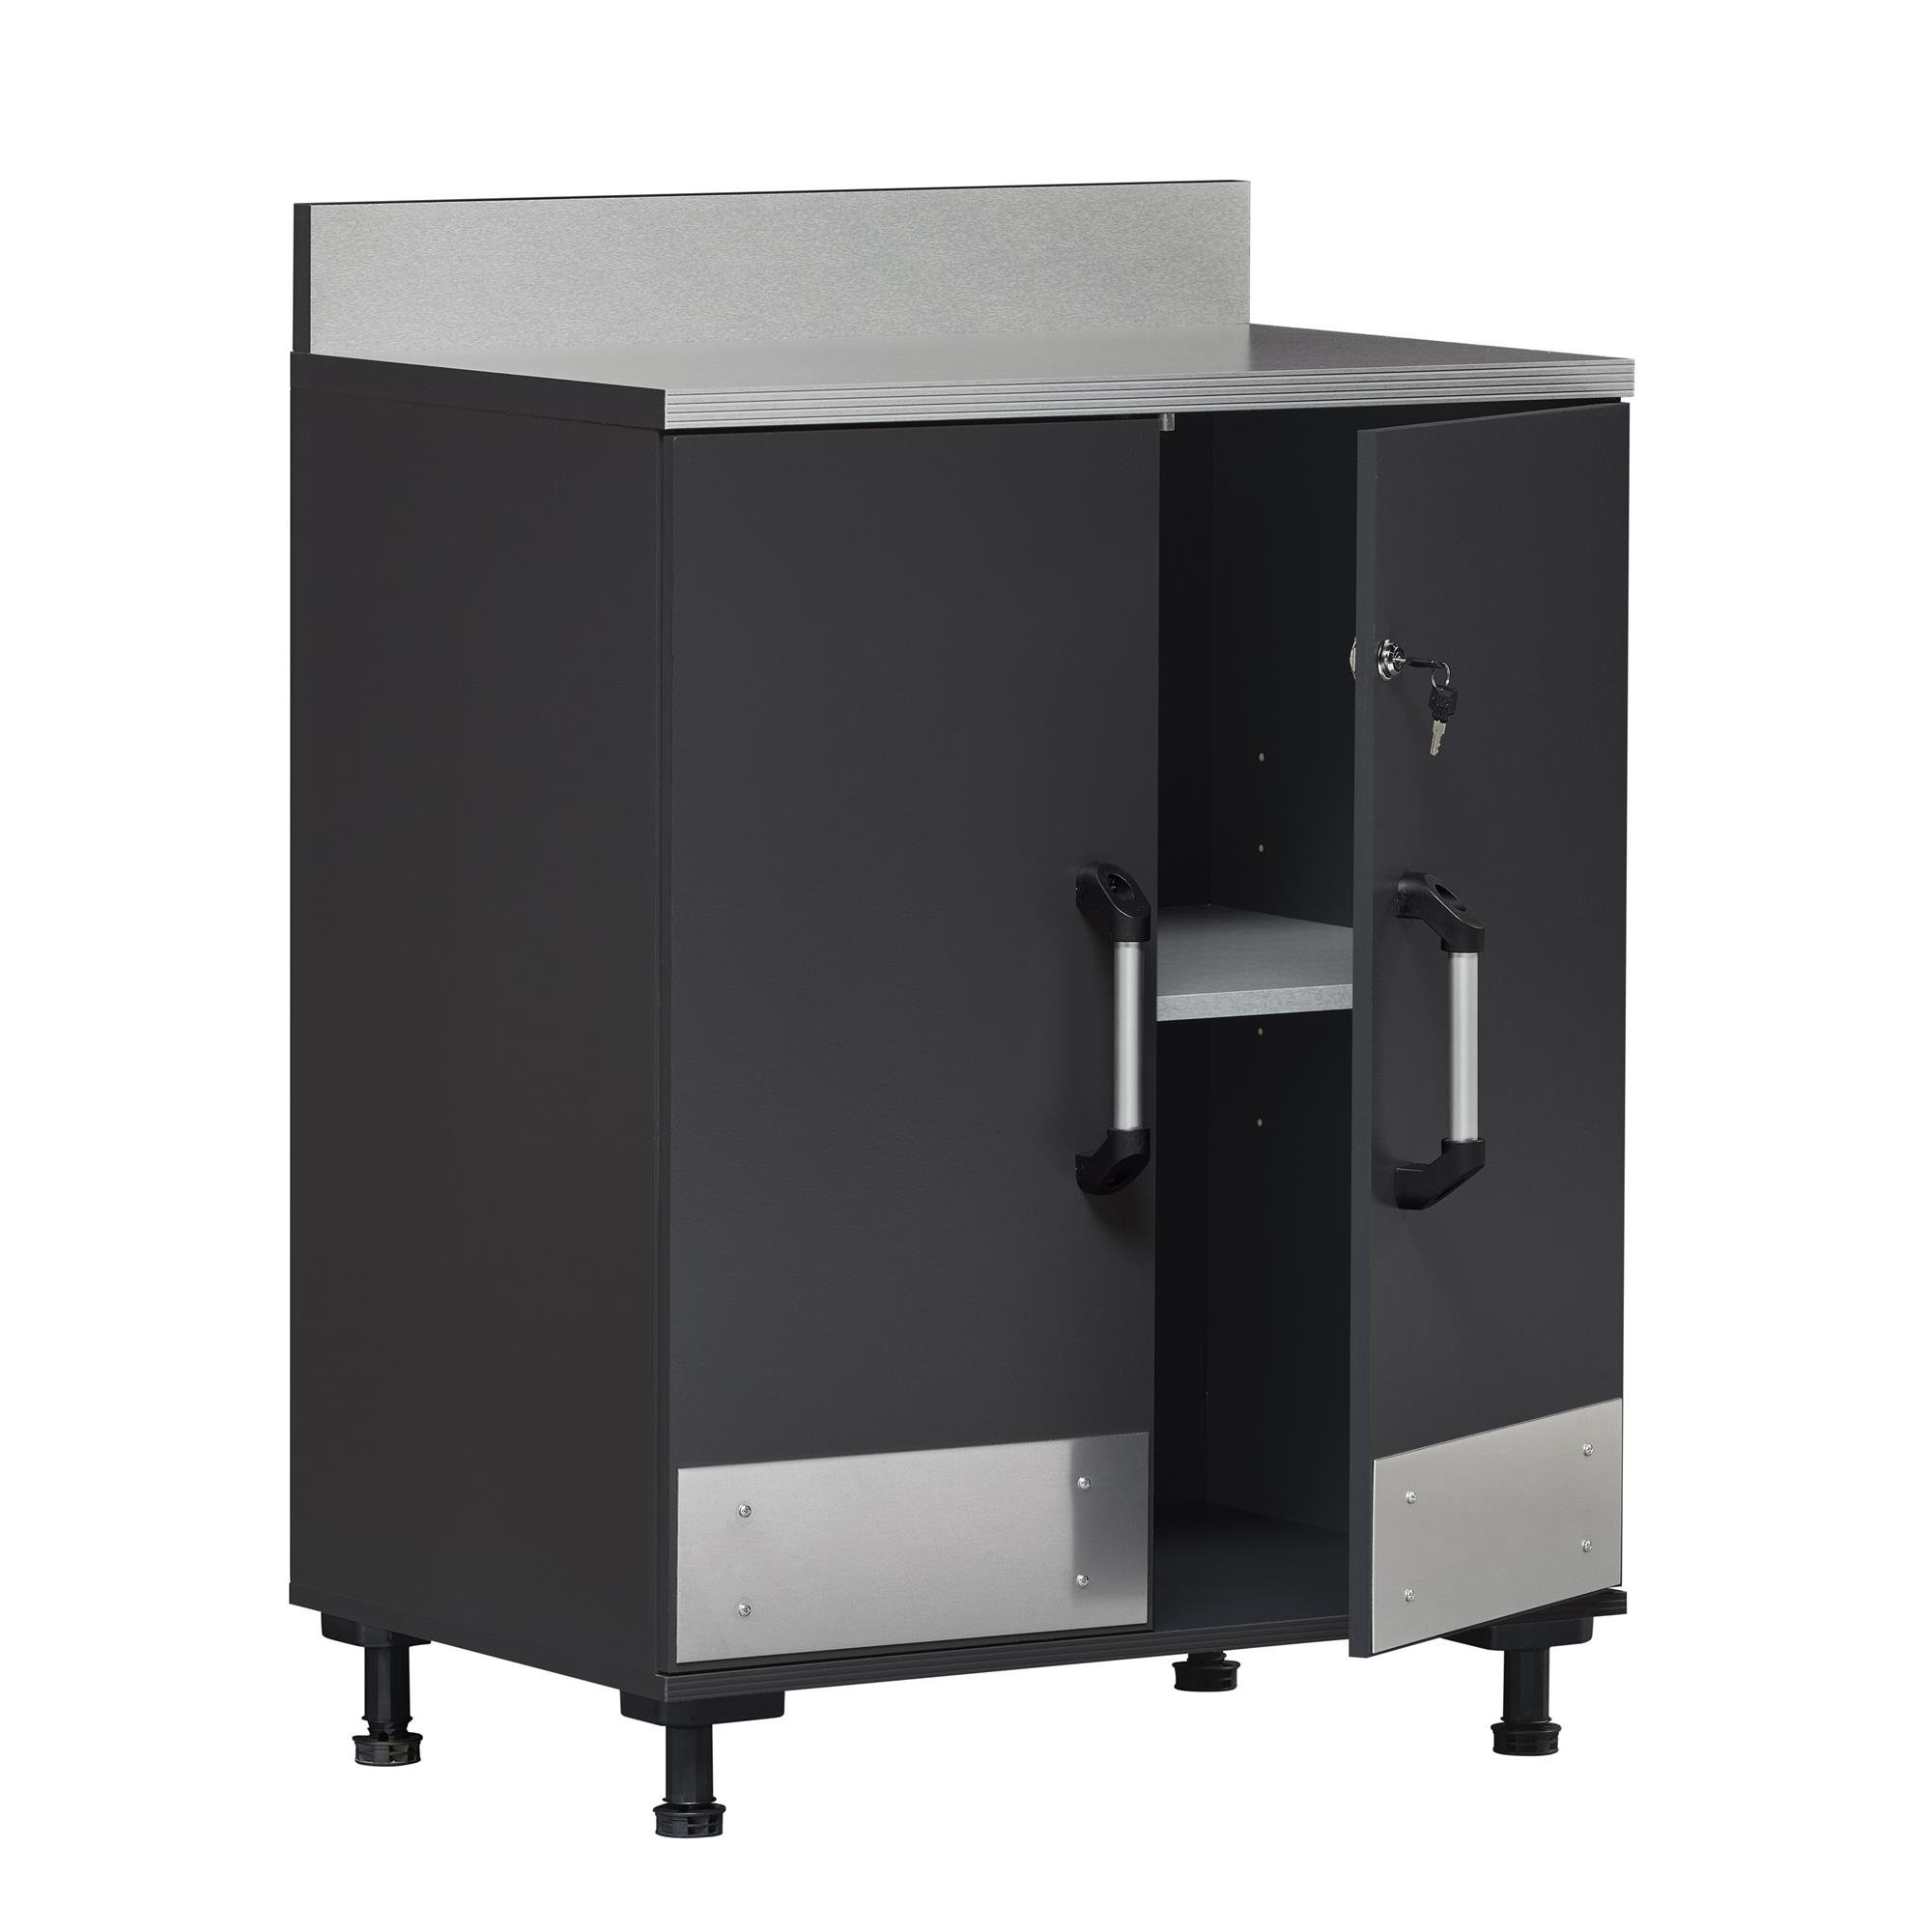 Ameriwood Home Boss -Base Cabinet 2 Door, Charcoal Gray by Ameriwood Home (Image #1)